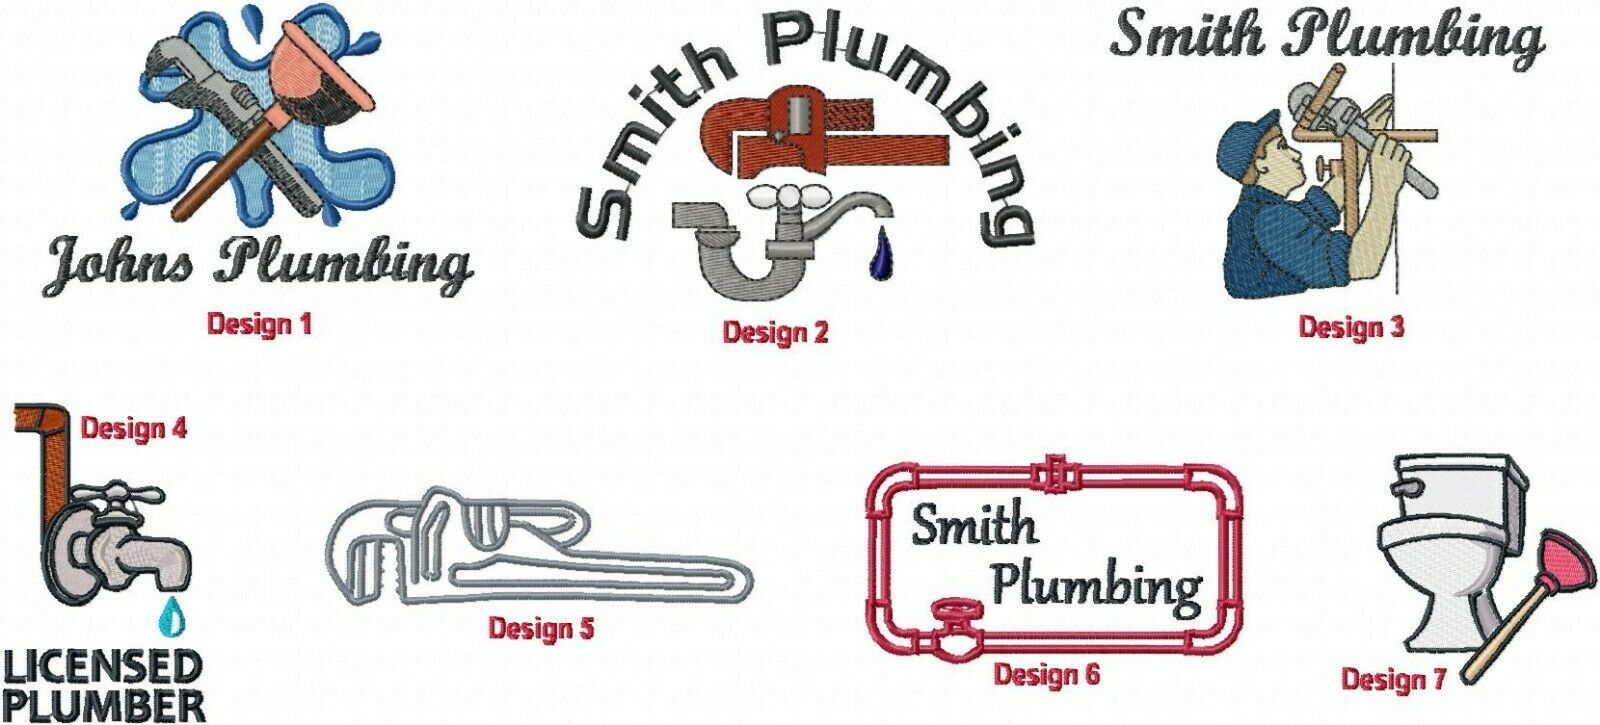 6 Shirts Embroidered Free 4Ur Plumbing Business HVAC Company